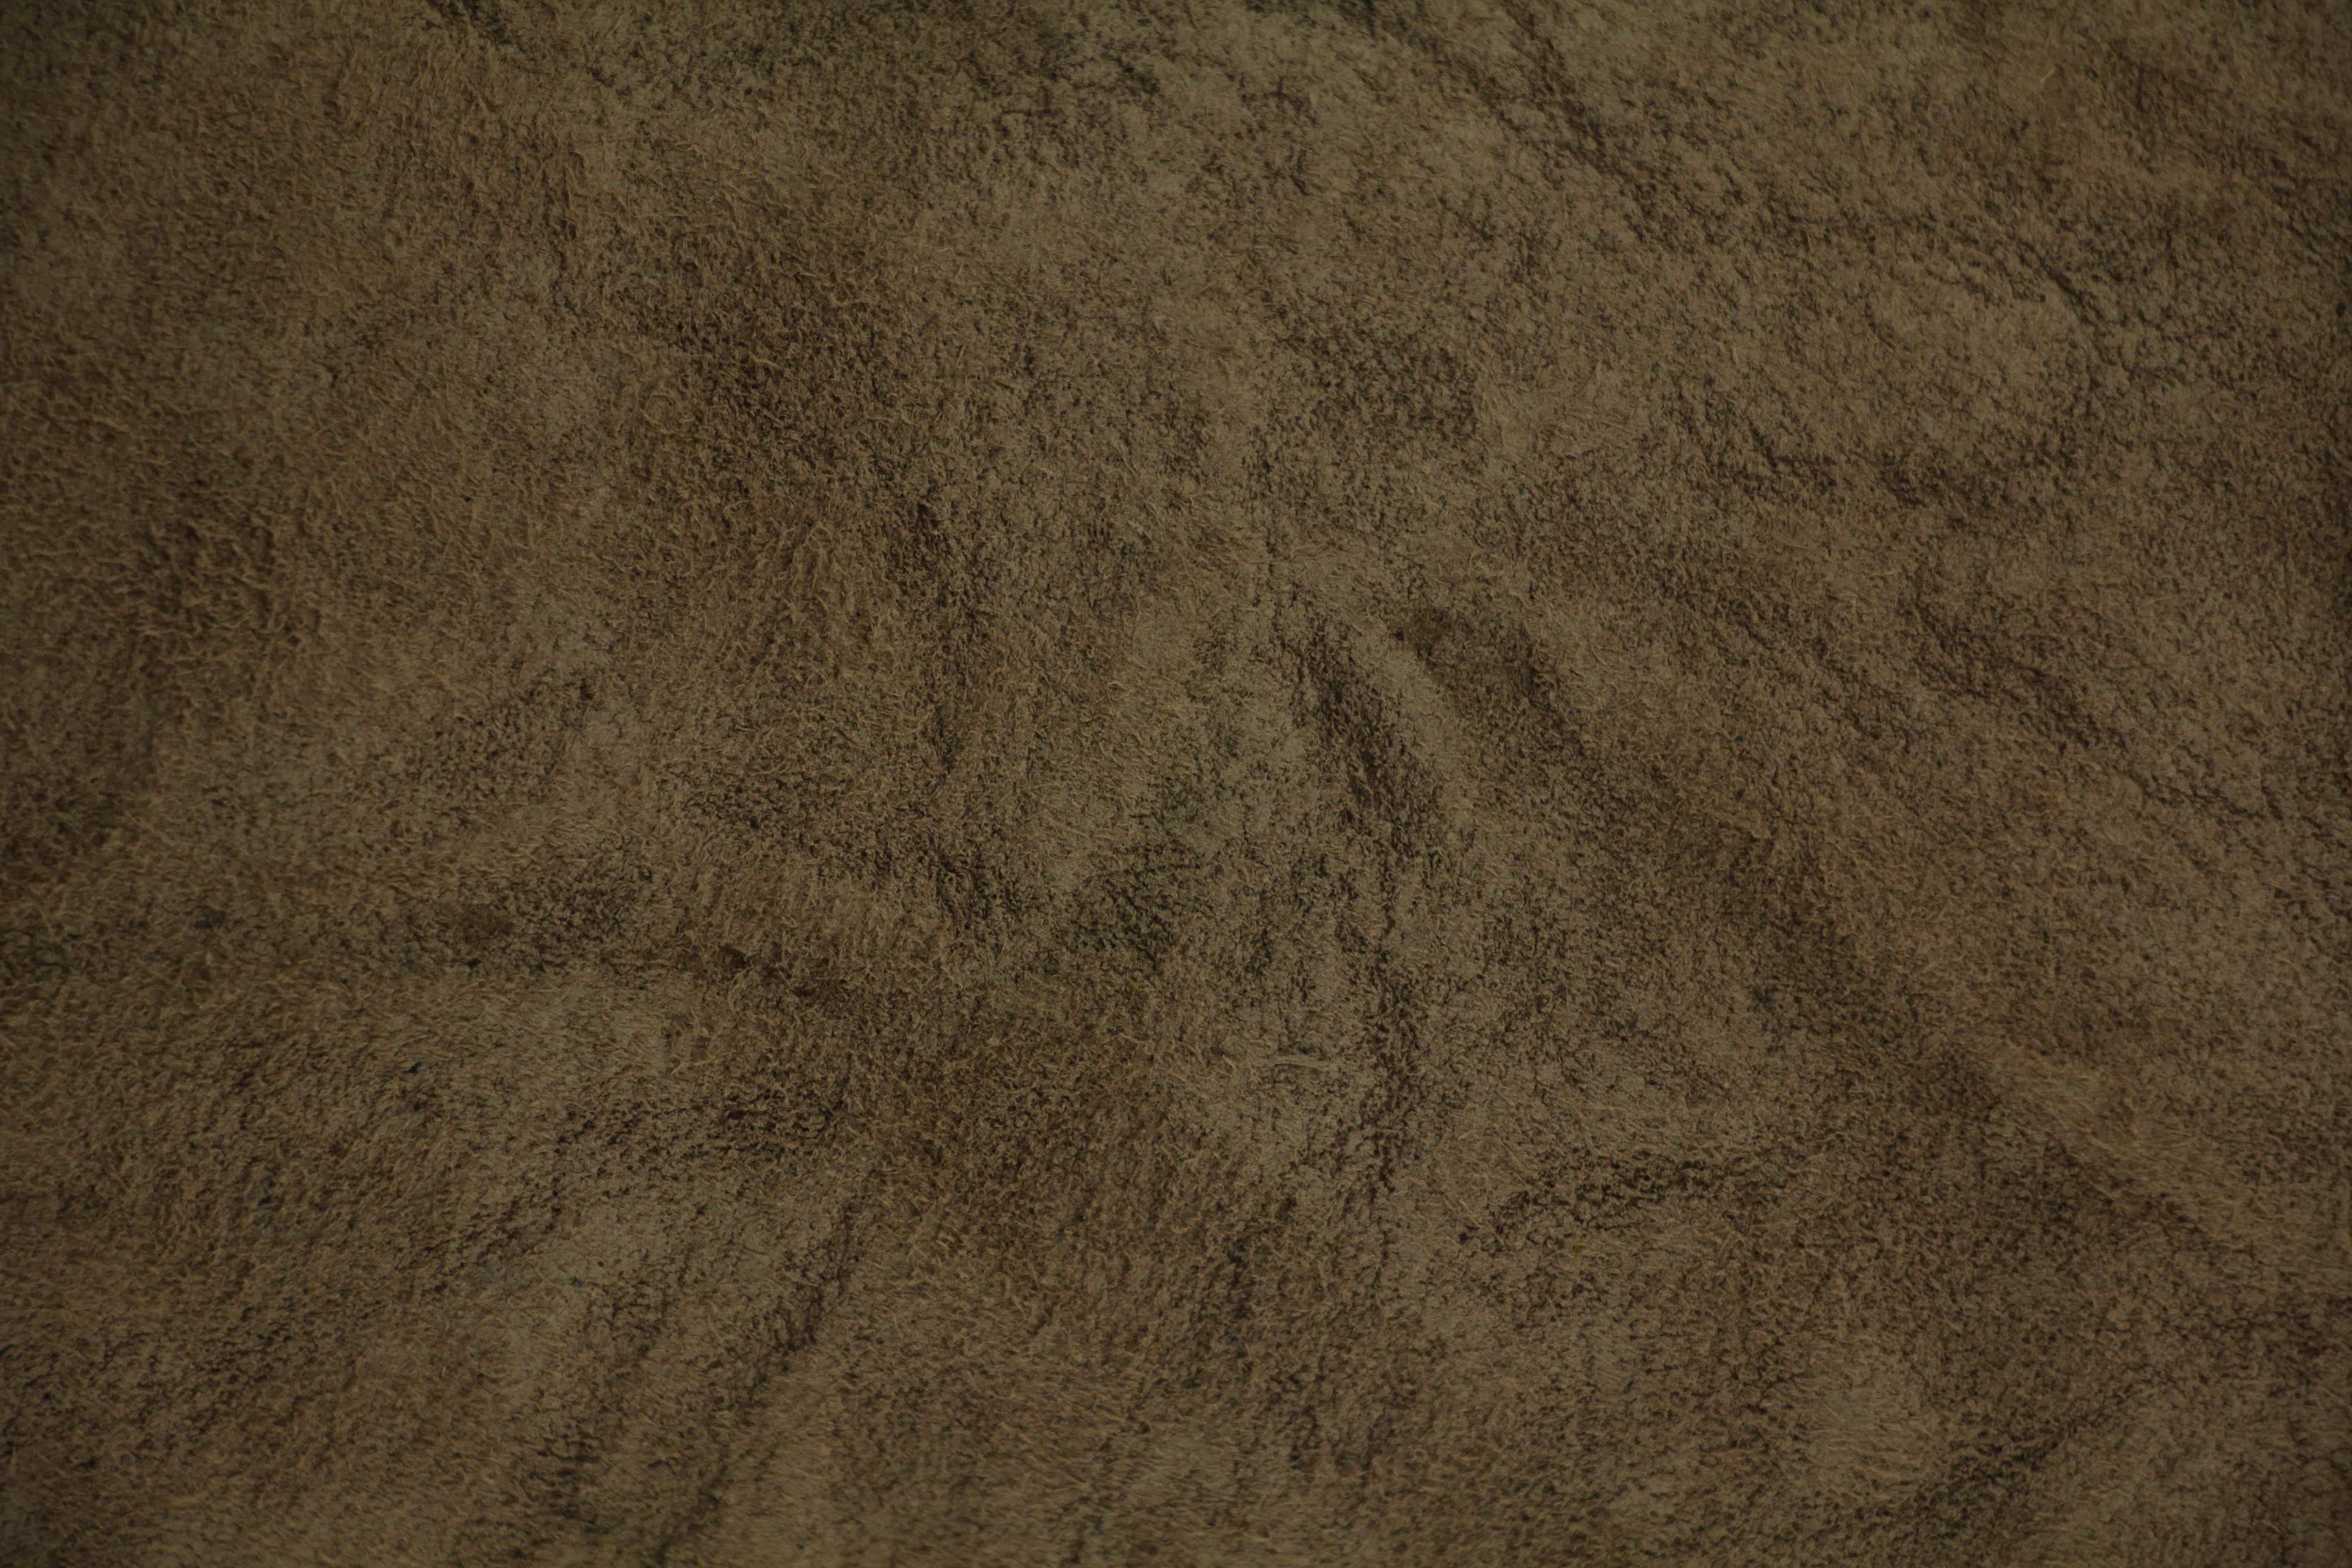 leather texture under skin rough grunge material hand made fabric ... for Leather Fabric Textures  585eri